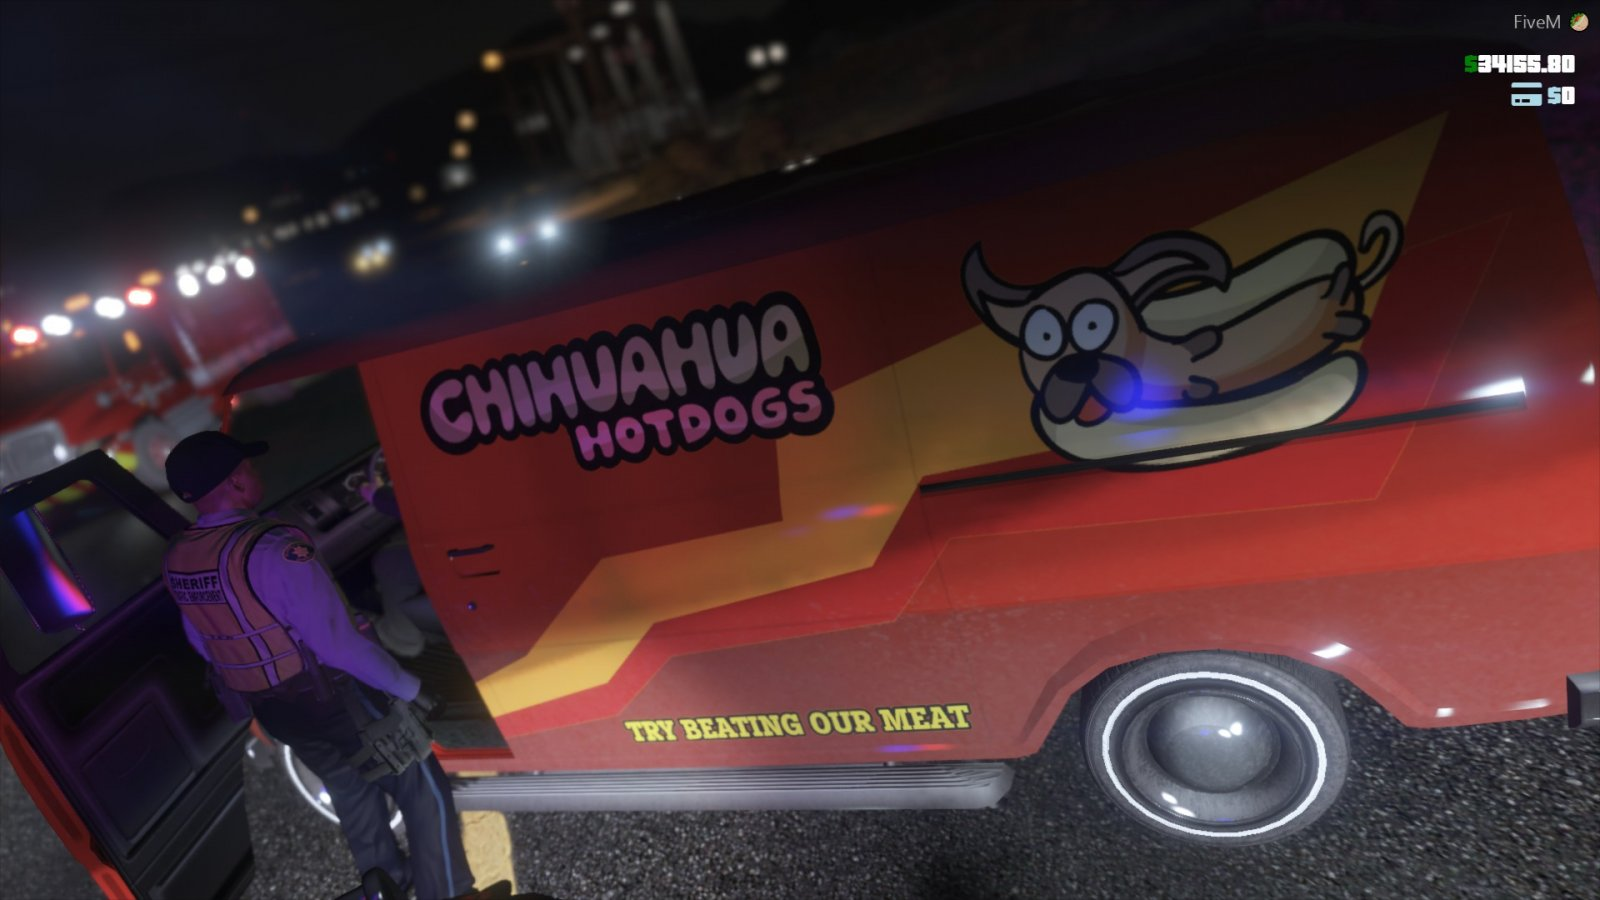 Chihuahua Hot Dogs is 10-7